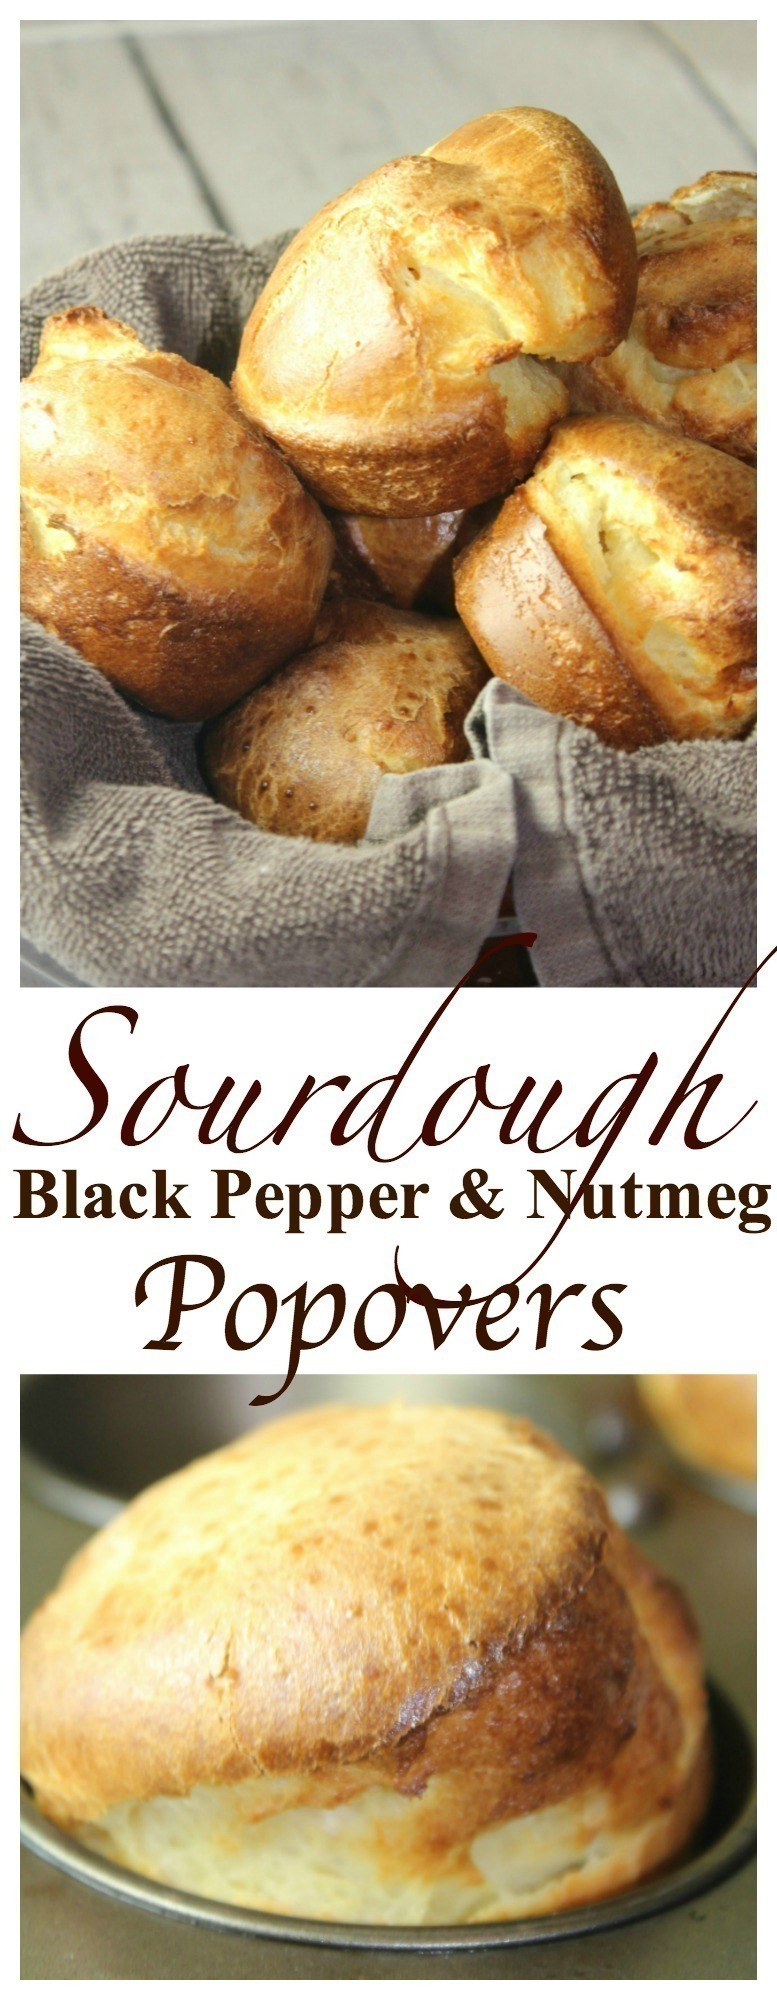 Sourdough Black Pepper & Nutmeg Popovers are a great way to use up too much Sourdough Starter – if you have been feeding your starter on the counter in your home and have TOO much to use… give these a try.